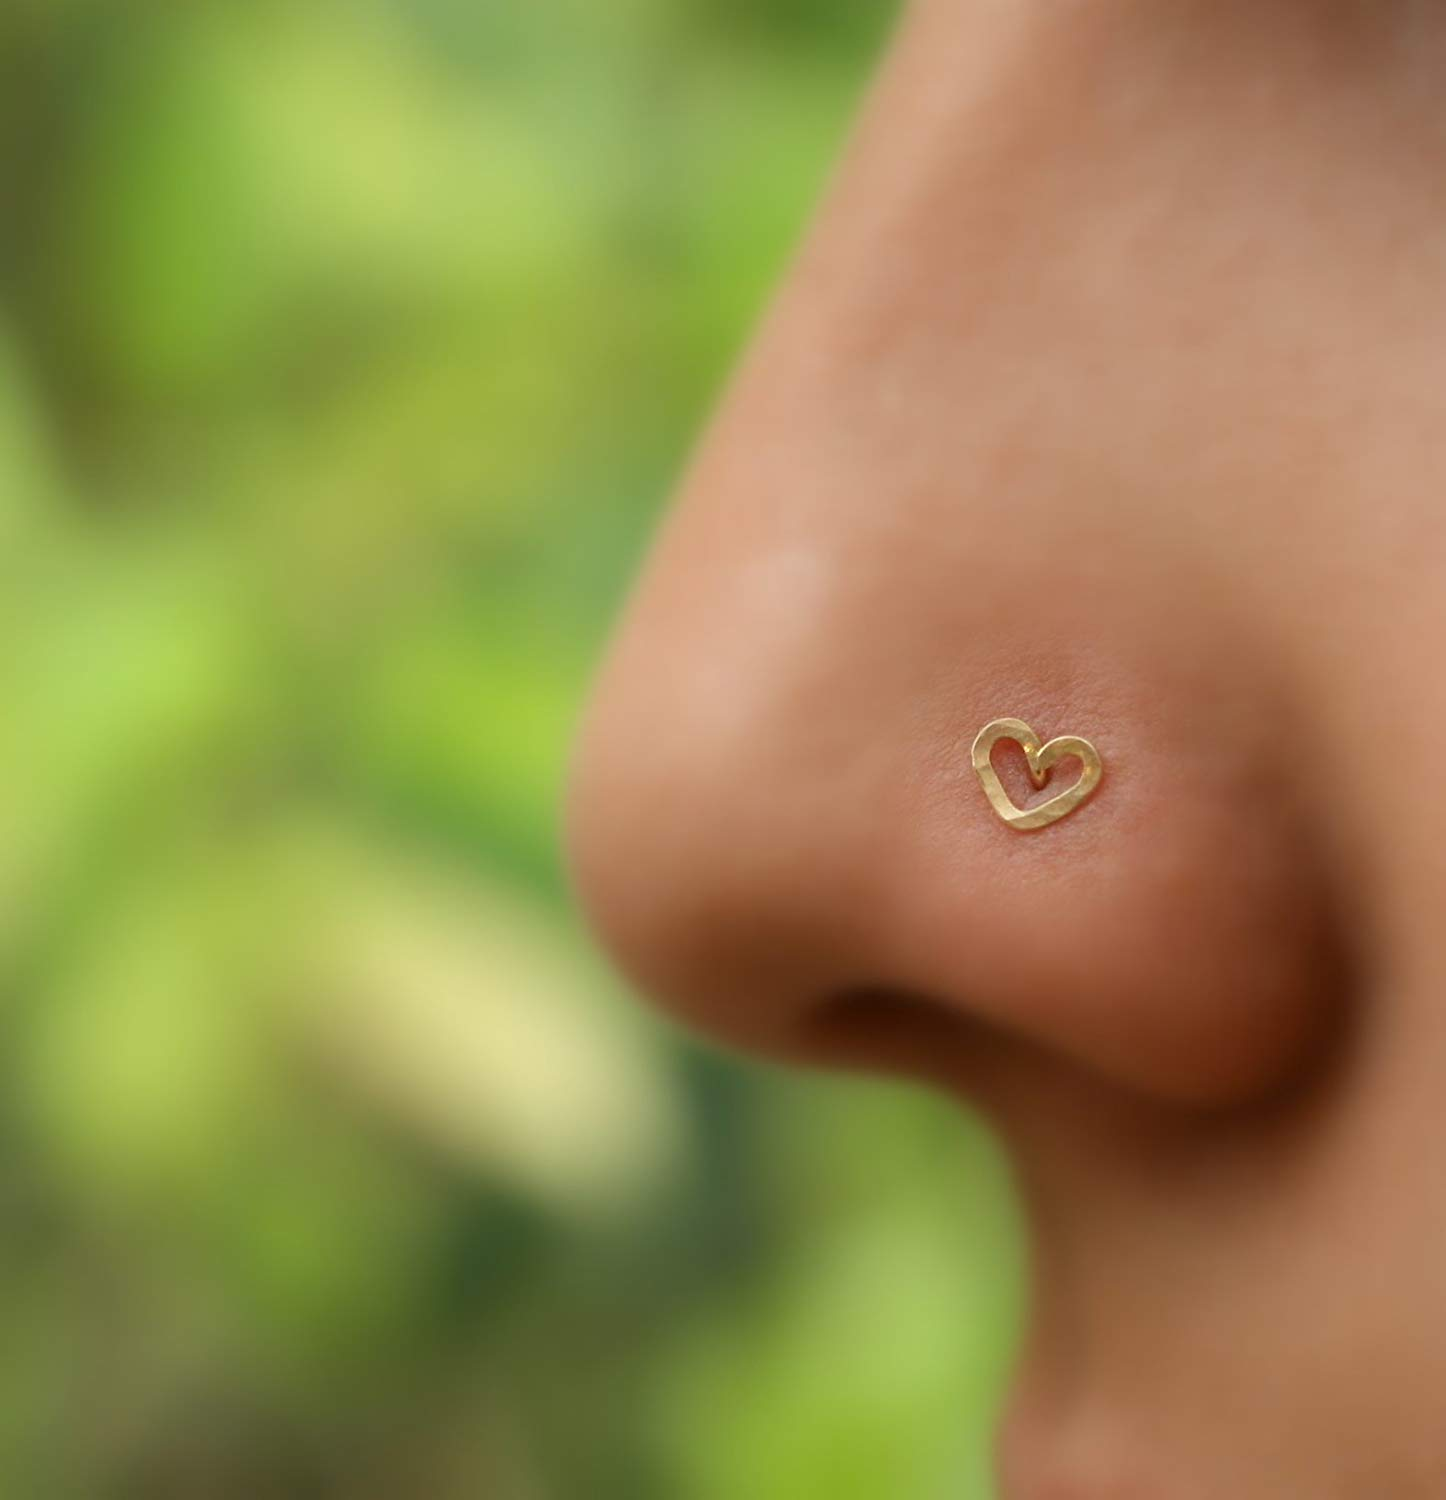 Nose Ring Stud - Cartilage Tragus Earring - 14K Yellow/Rose/White Gold - Open Heart -22G to 16G Post